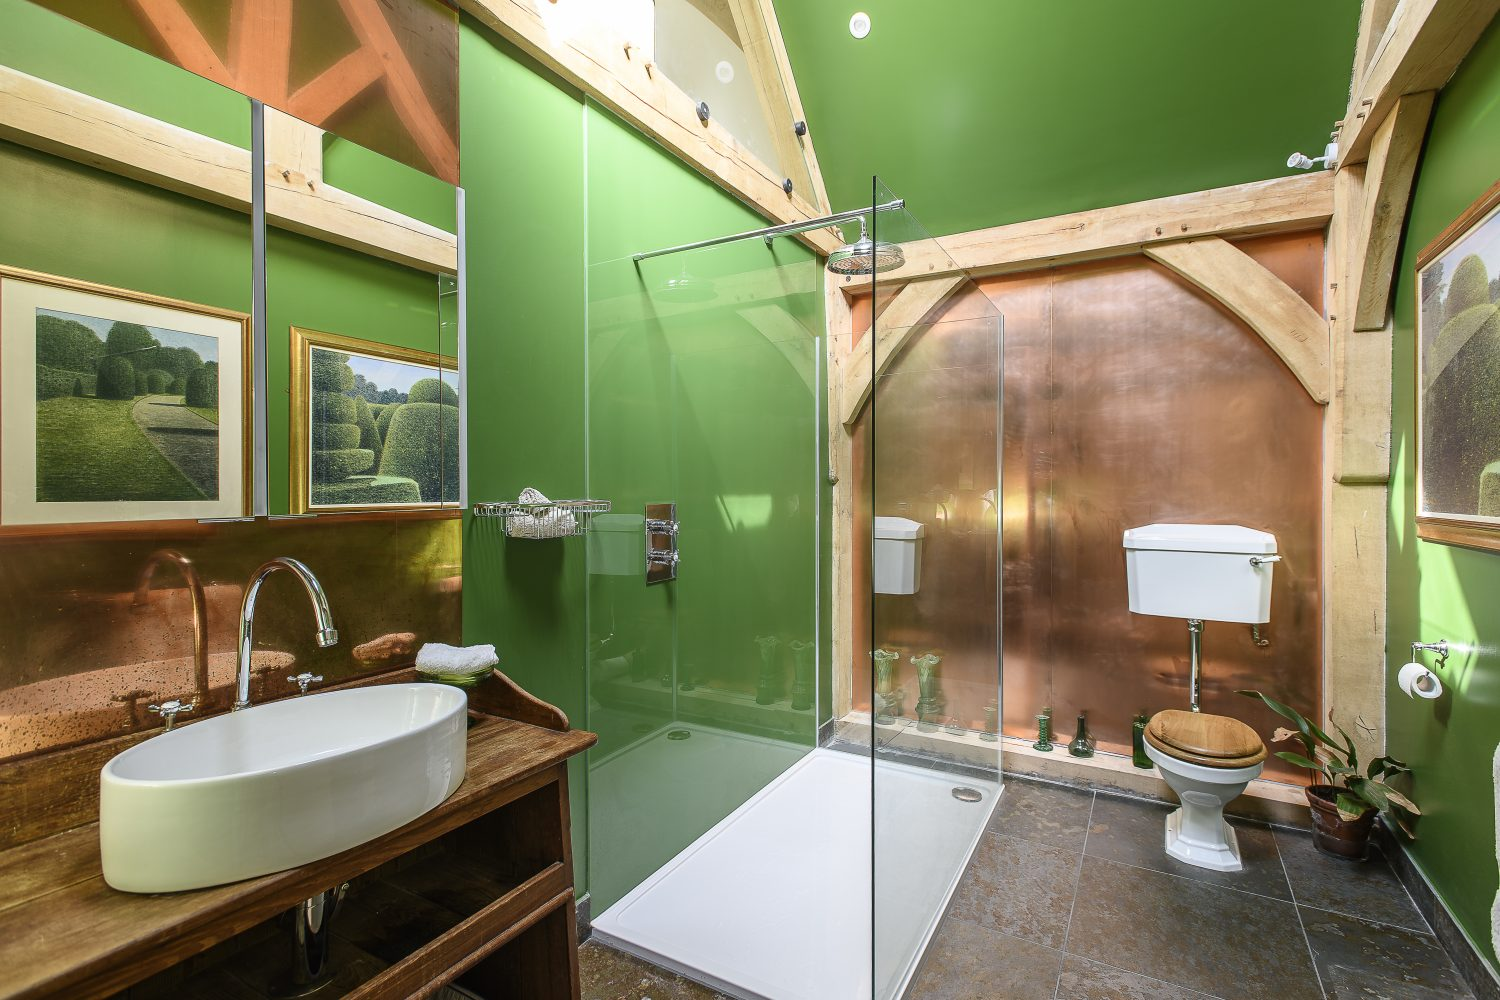 The master bedroom's vibrantly green and spacious ensuite features a copper splashback and wall below its soaring vaulted ceiling. The washstand once served as a babies' changing station